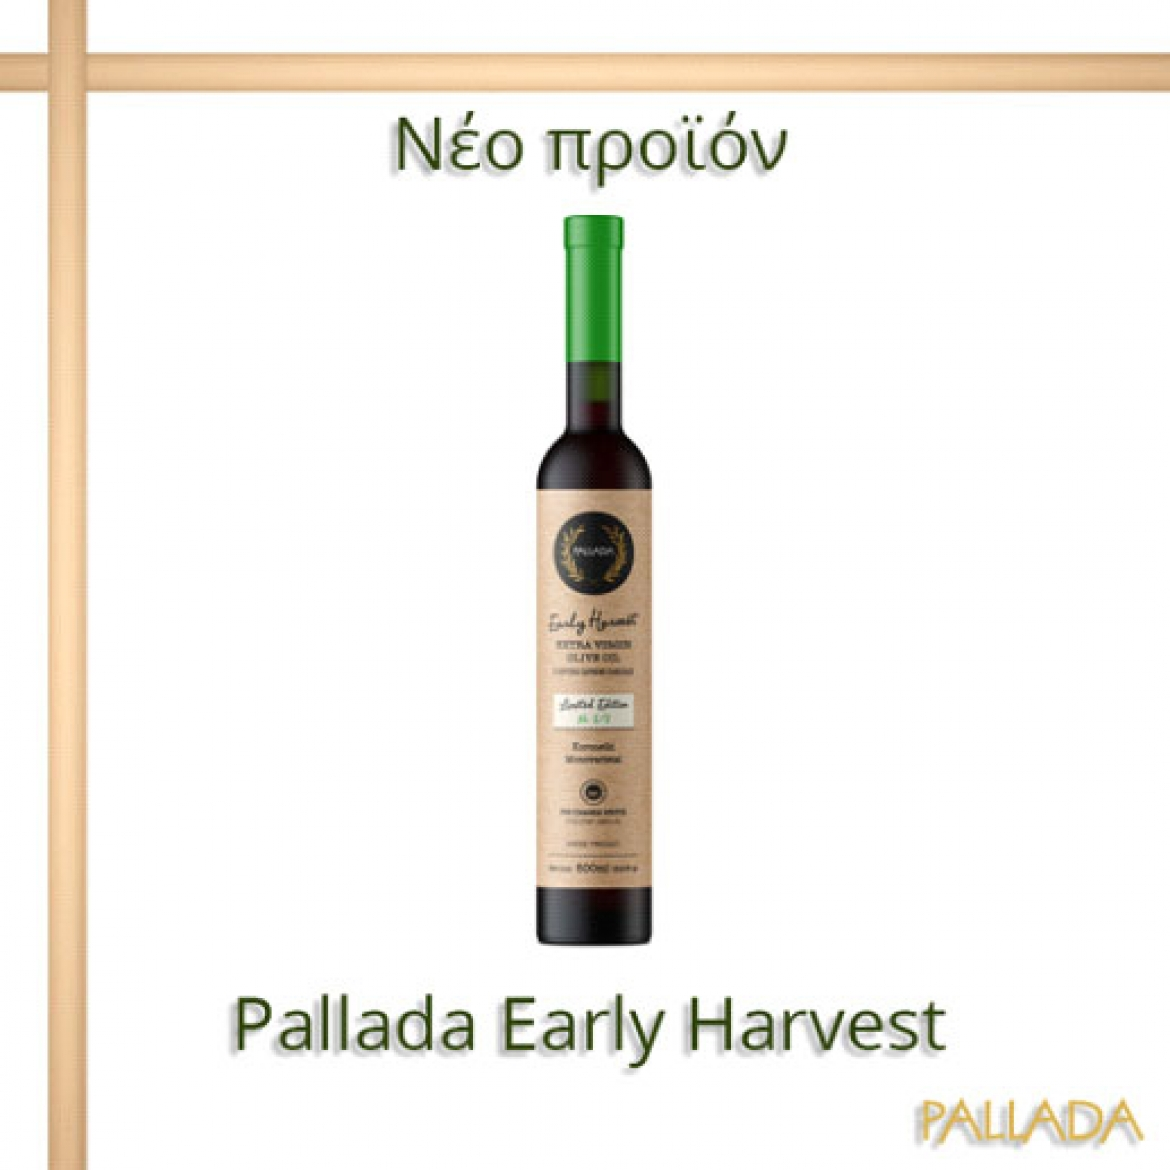 Nέο προιόν Pallada Early Harvest